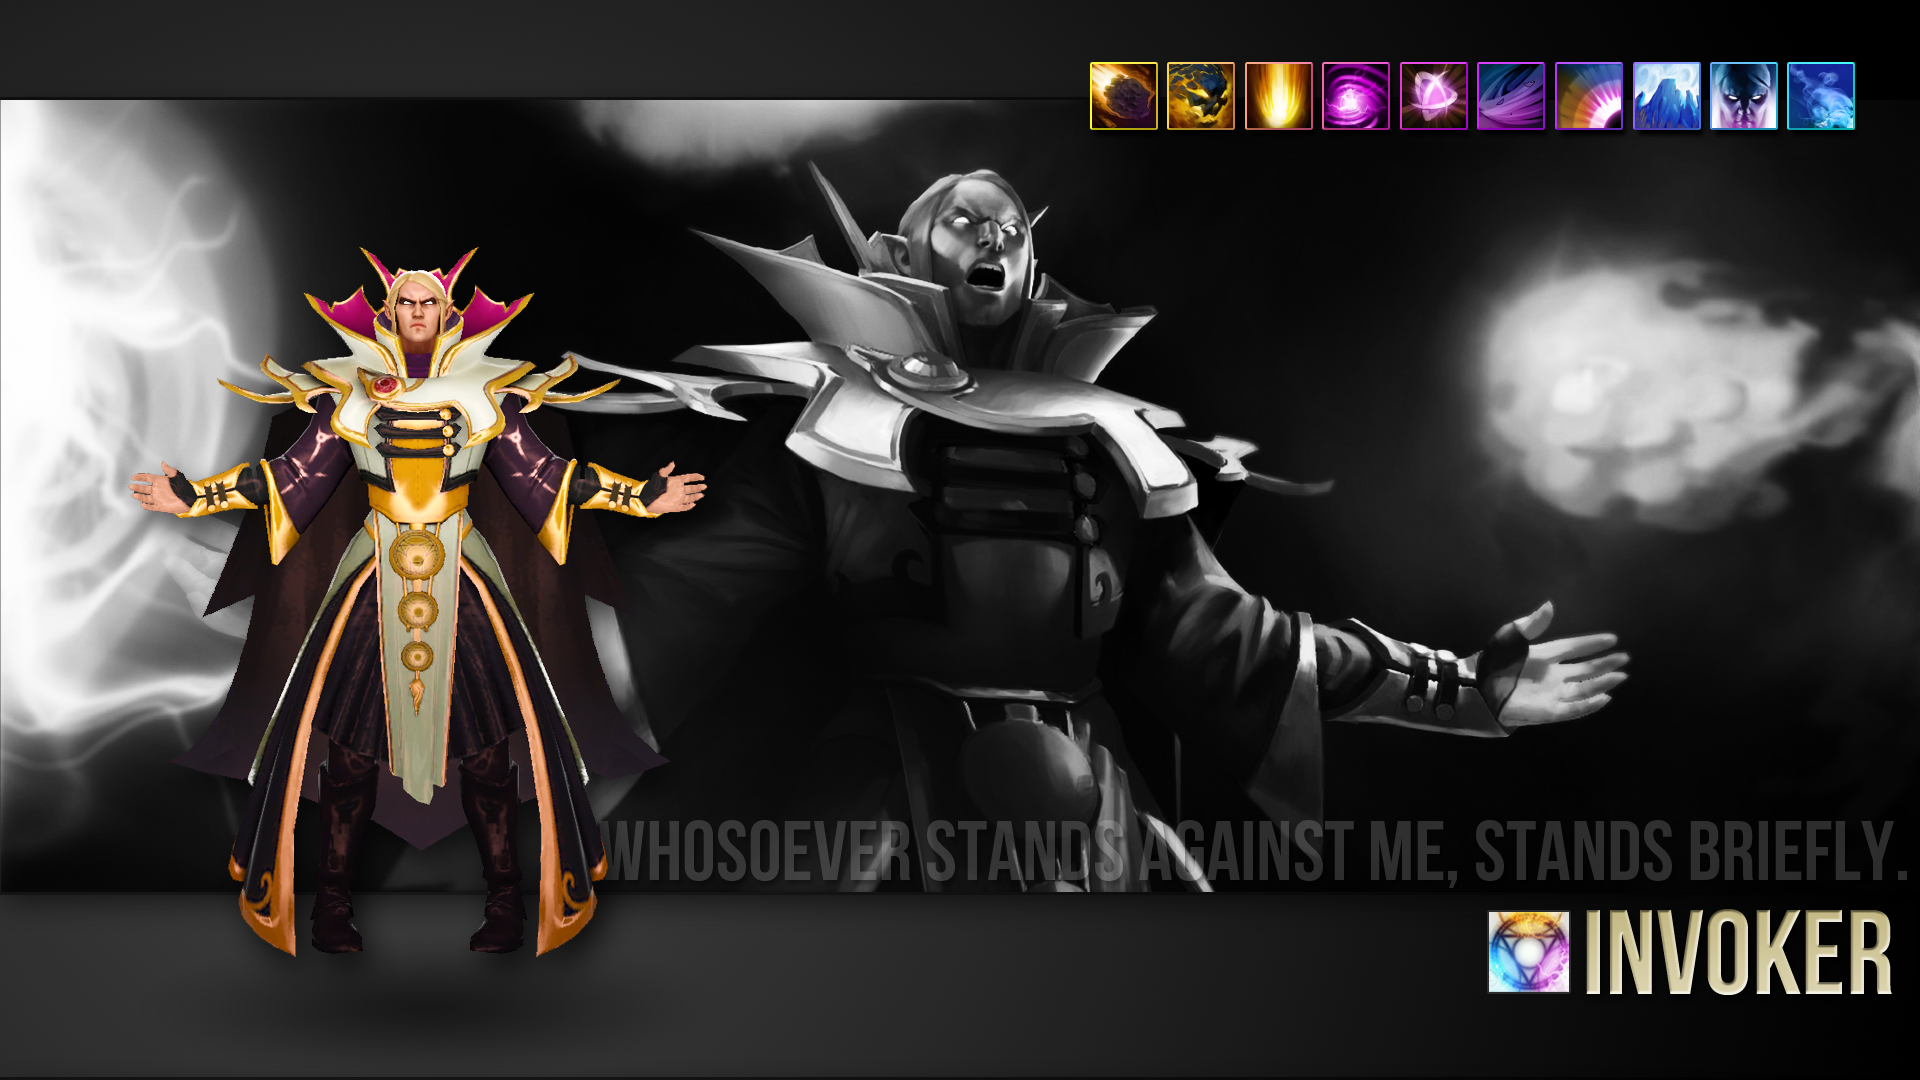 Dota 2 Wallpaper   Invoker   MMORPG Photo   MMOsitecom 1920x1080